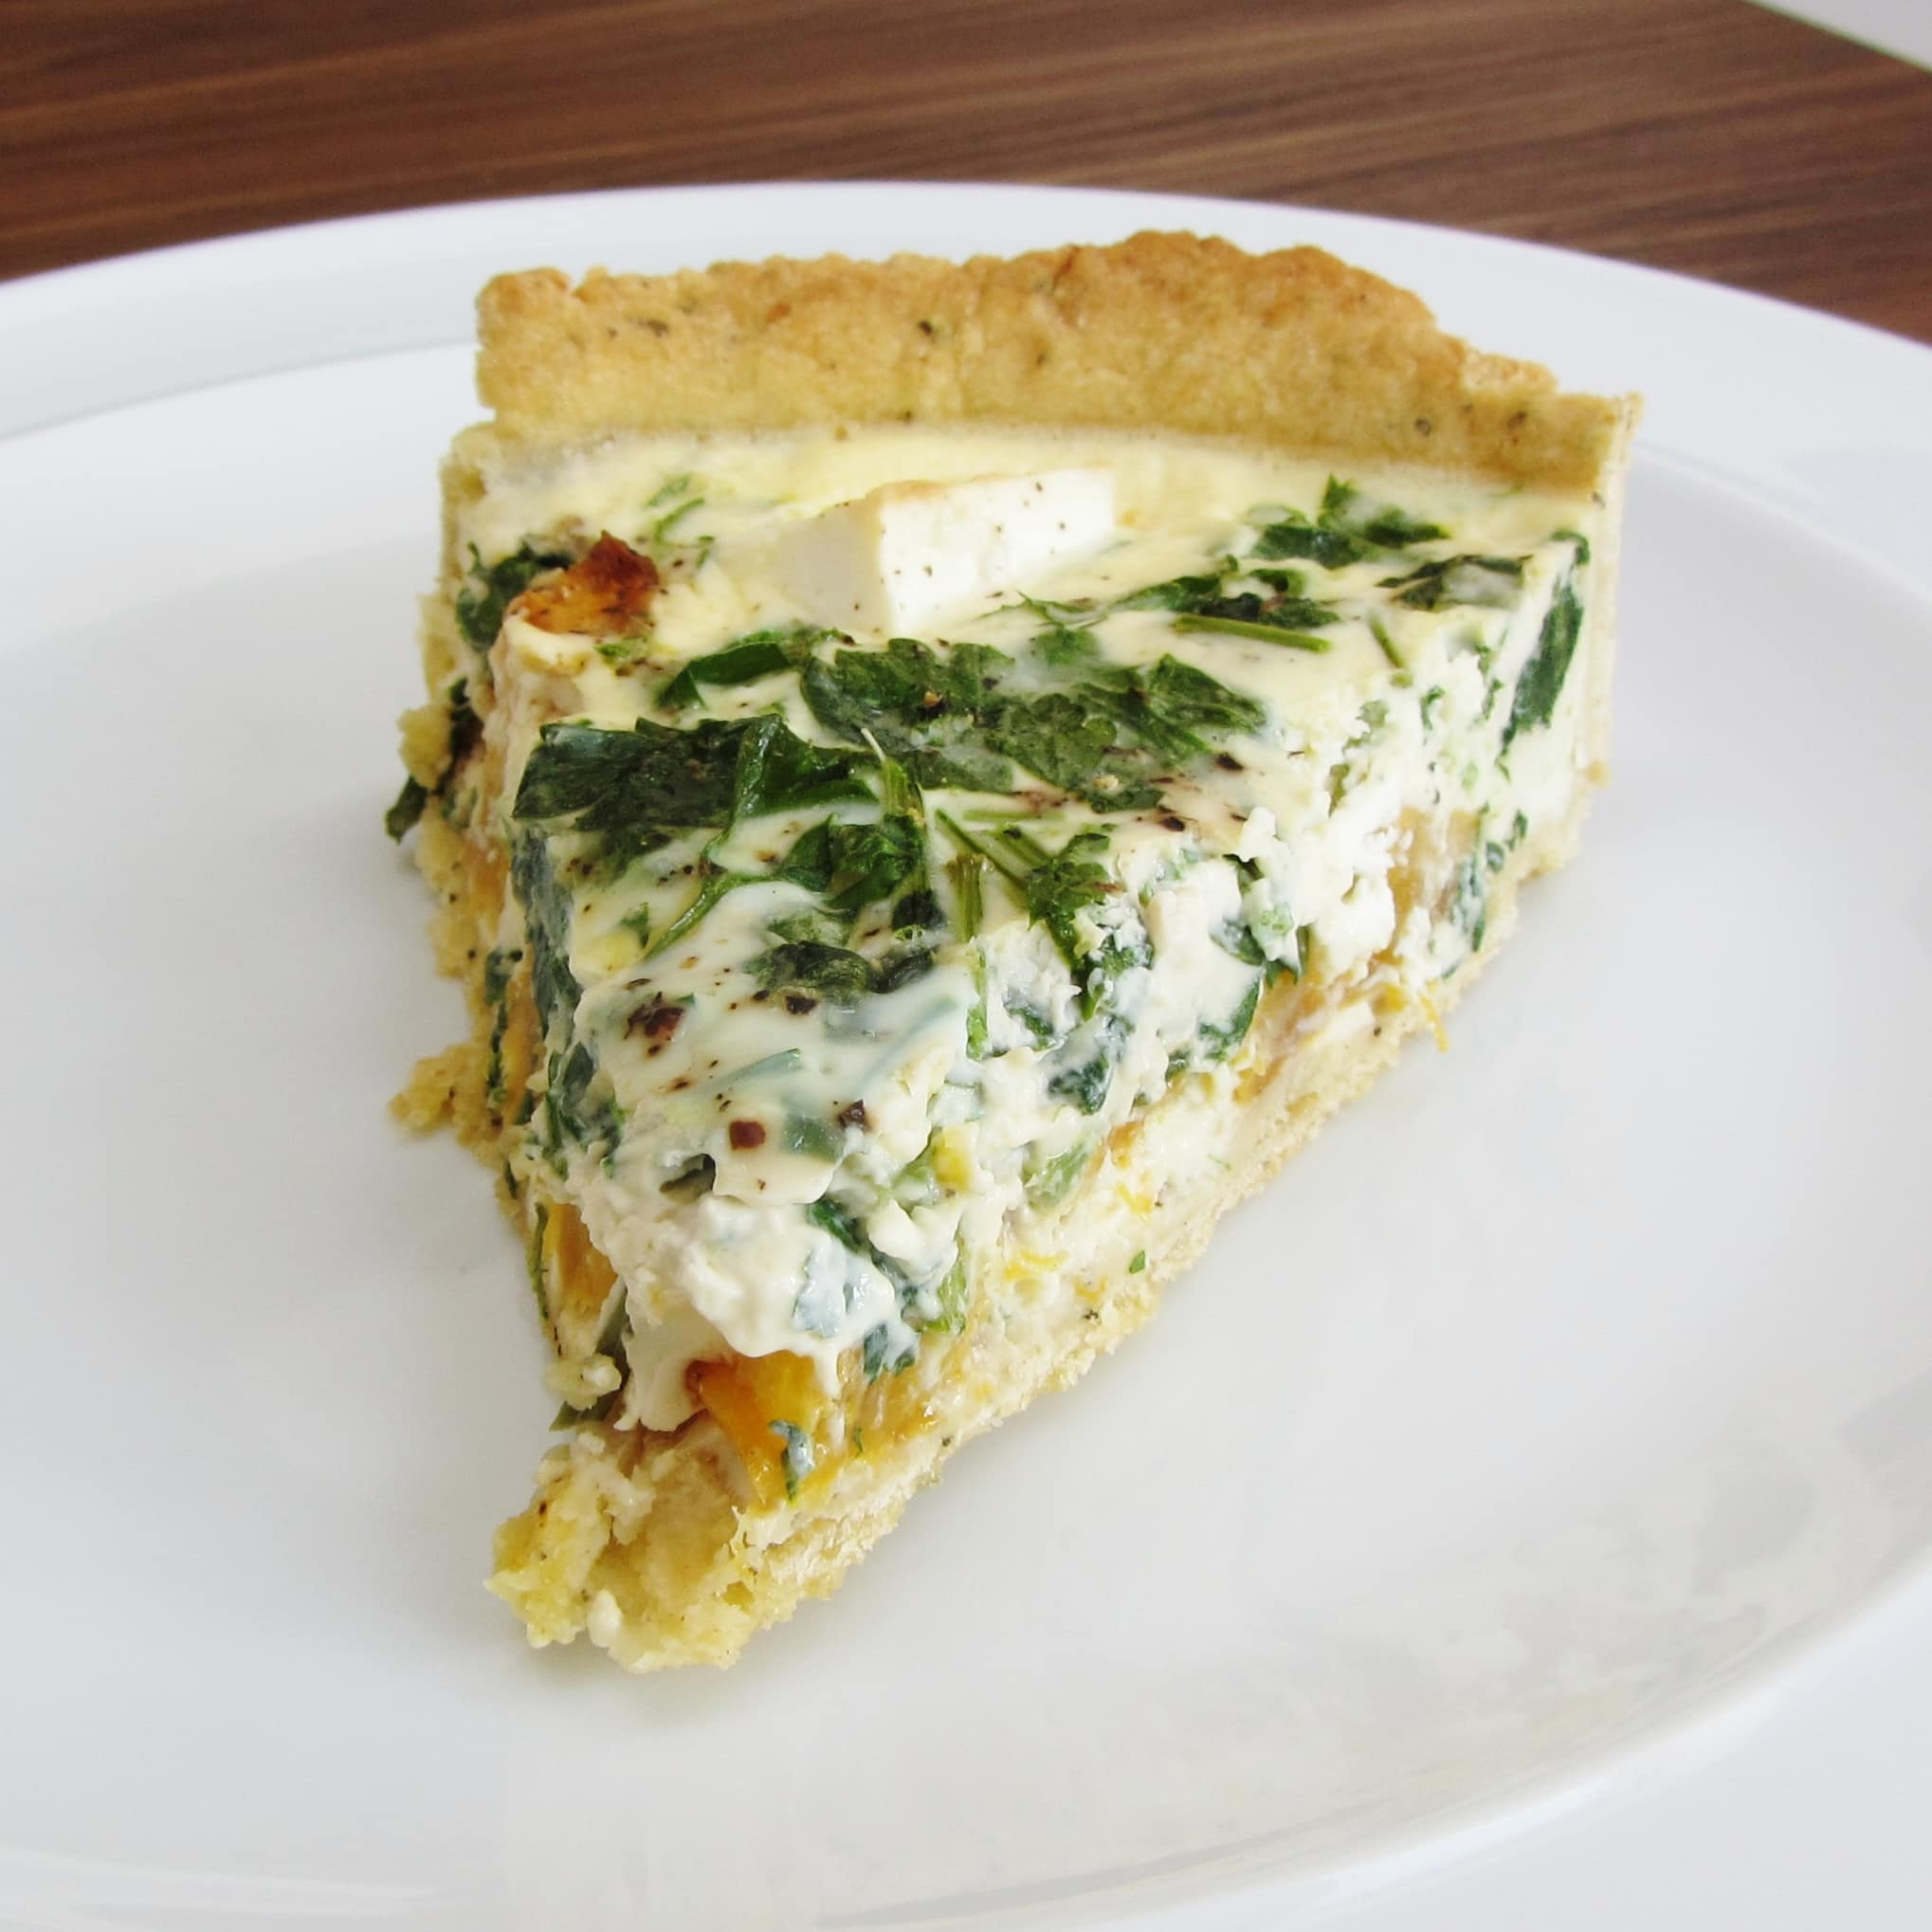 Vegetarian roasted pumpkin, spinach and feta quiche